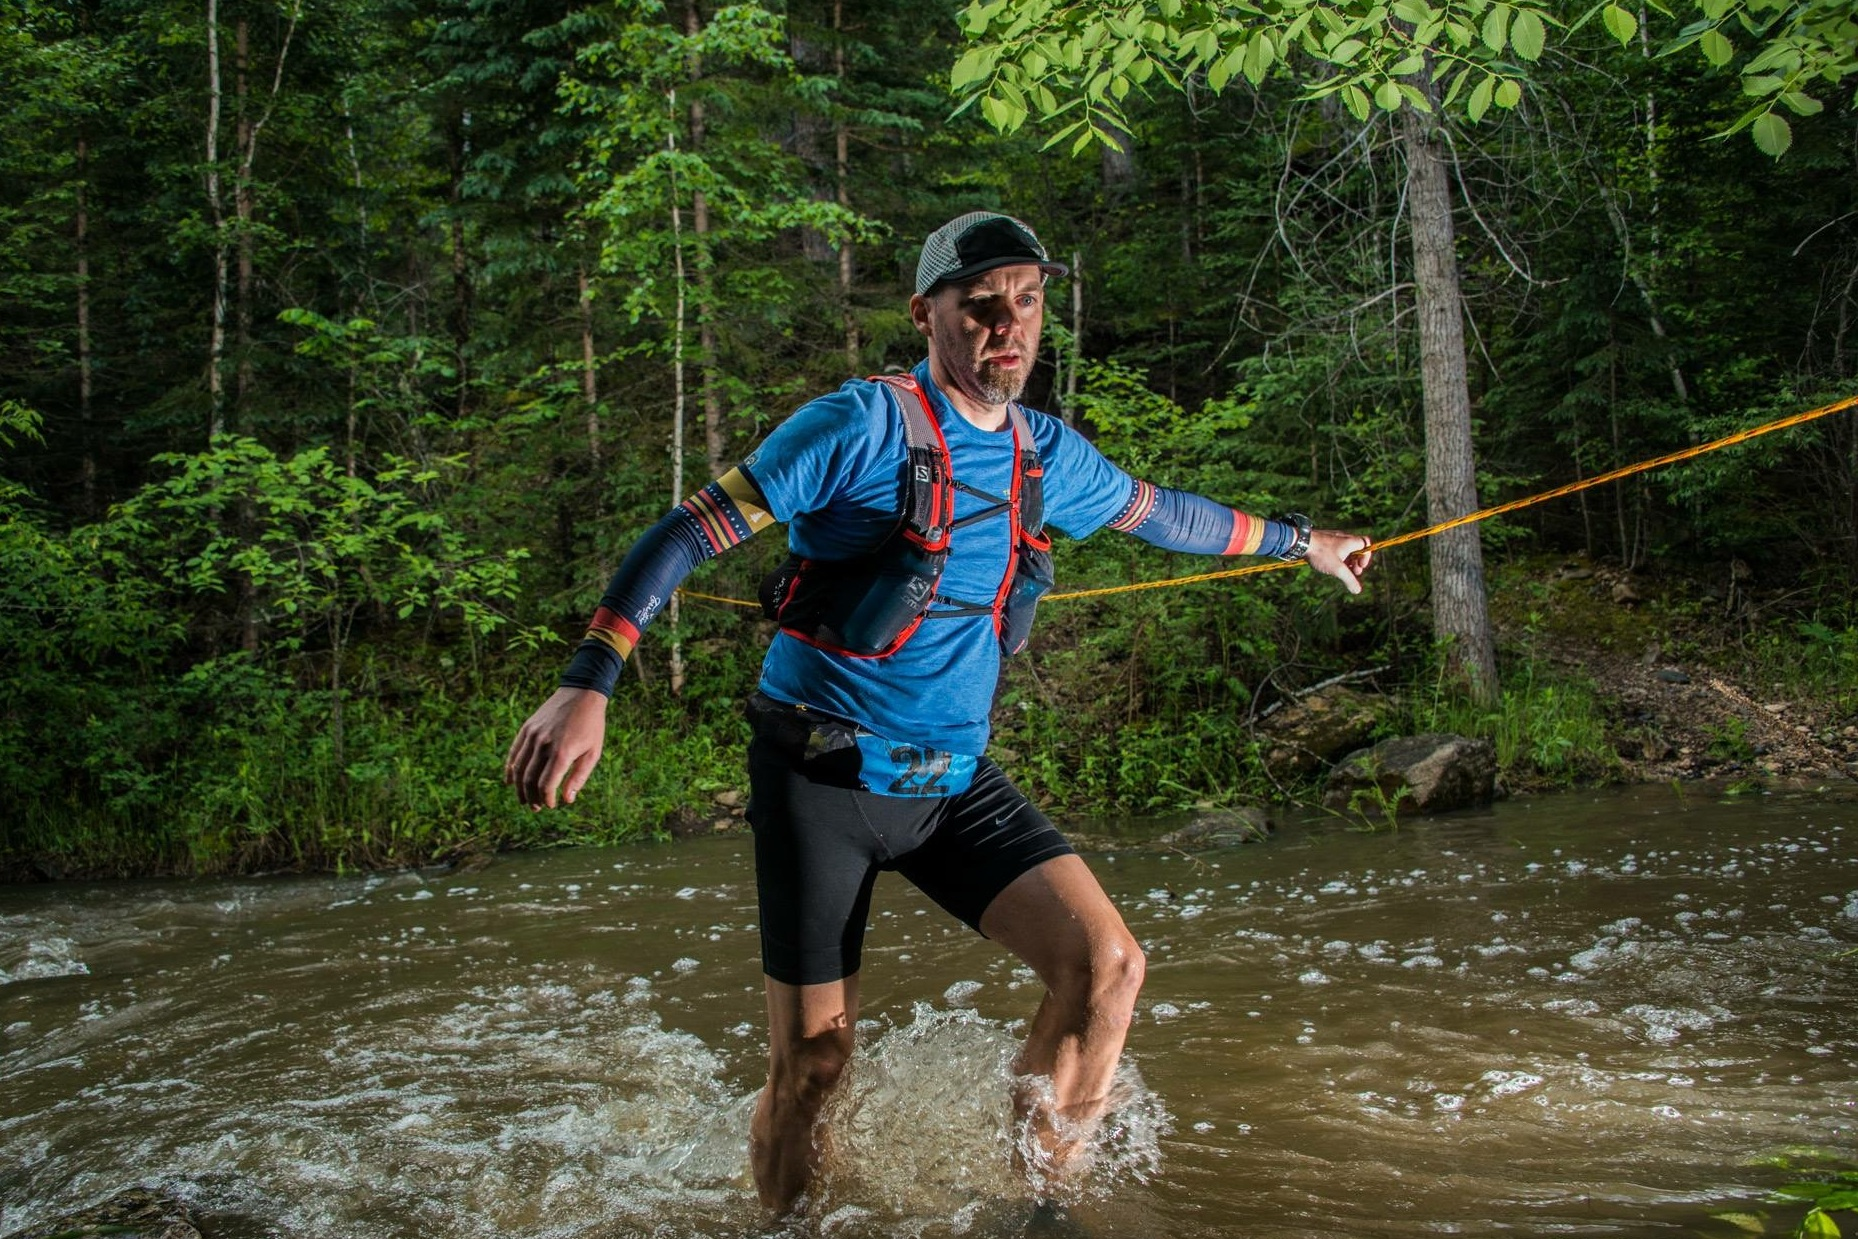 Erik Dahl @eadahl  Erik Dahl is a trail and ultra runner living in Michigan with his wife and two kids. After playing soccer through college and a physically lethargic 20's and 30's, he begrudgingly started running again in 2014 and somehow fell in love with running ultra distances. Erik is always looking for challenges and adventure runs to explore the natural world and connect with himself or others.